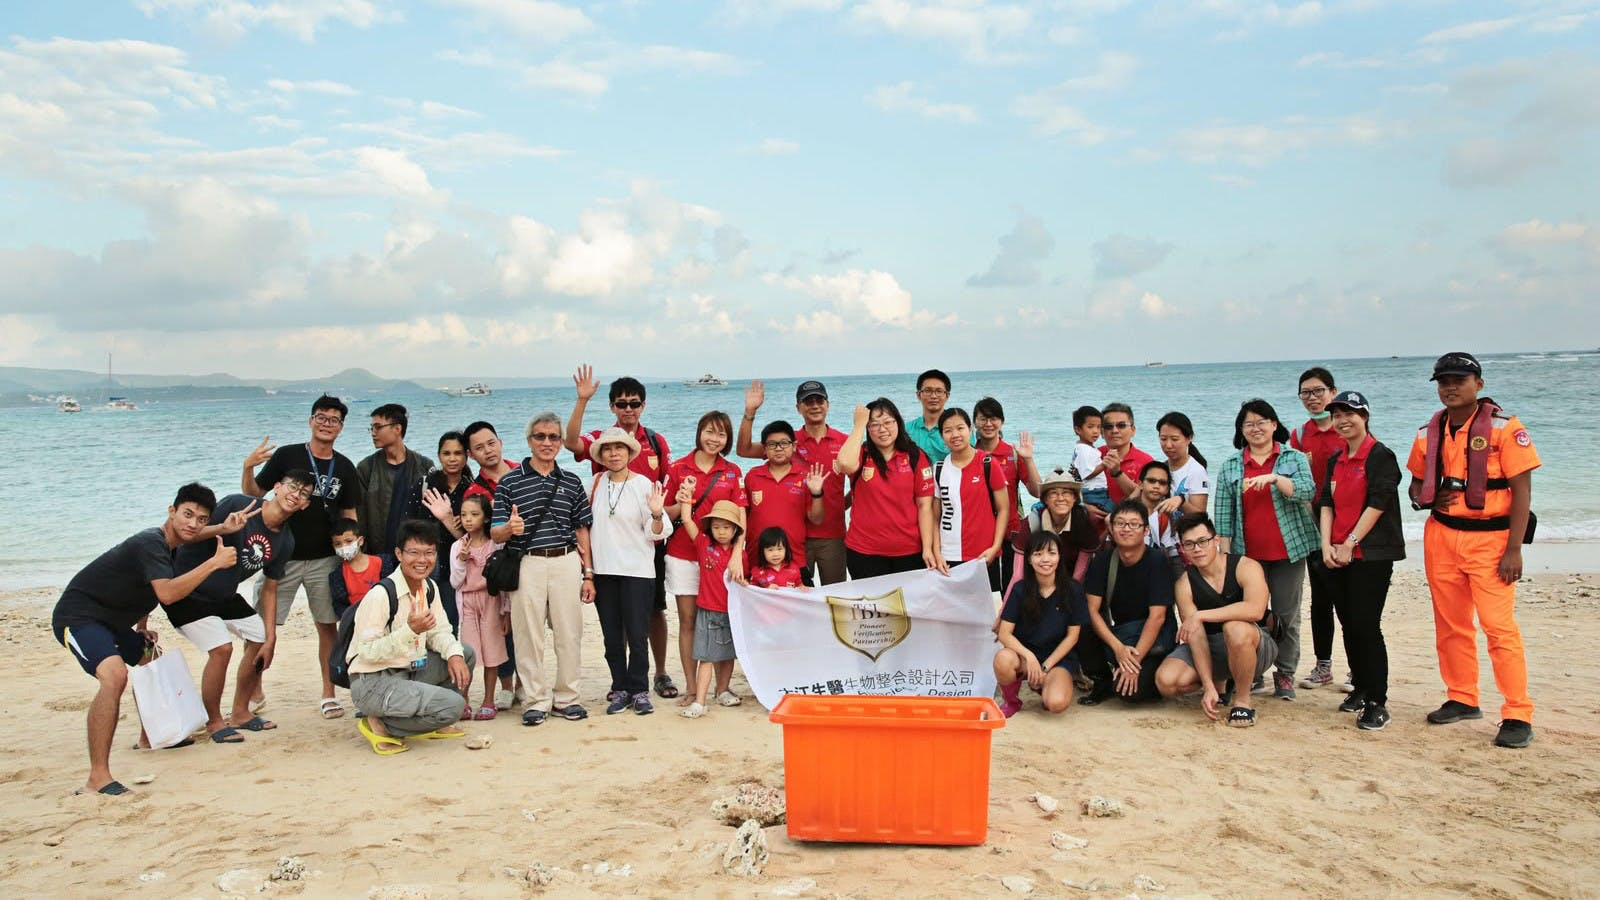 TCI started a collaborative project with the National Museum of Marine Biology & Aquarium (NMMBA) focusing on marine protection. By releasing sea turtles to the wild at the seashore of Houbi Lake on October 19th with the assistance of professional coast guards and employees of NMMBA, we dedicate ourselves to protecting marine ecology and educating our children about marine knowledge and marine conservation.